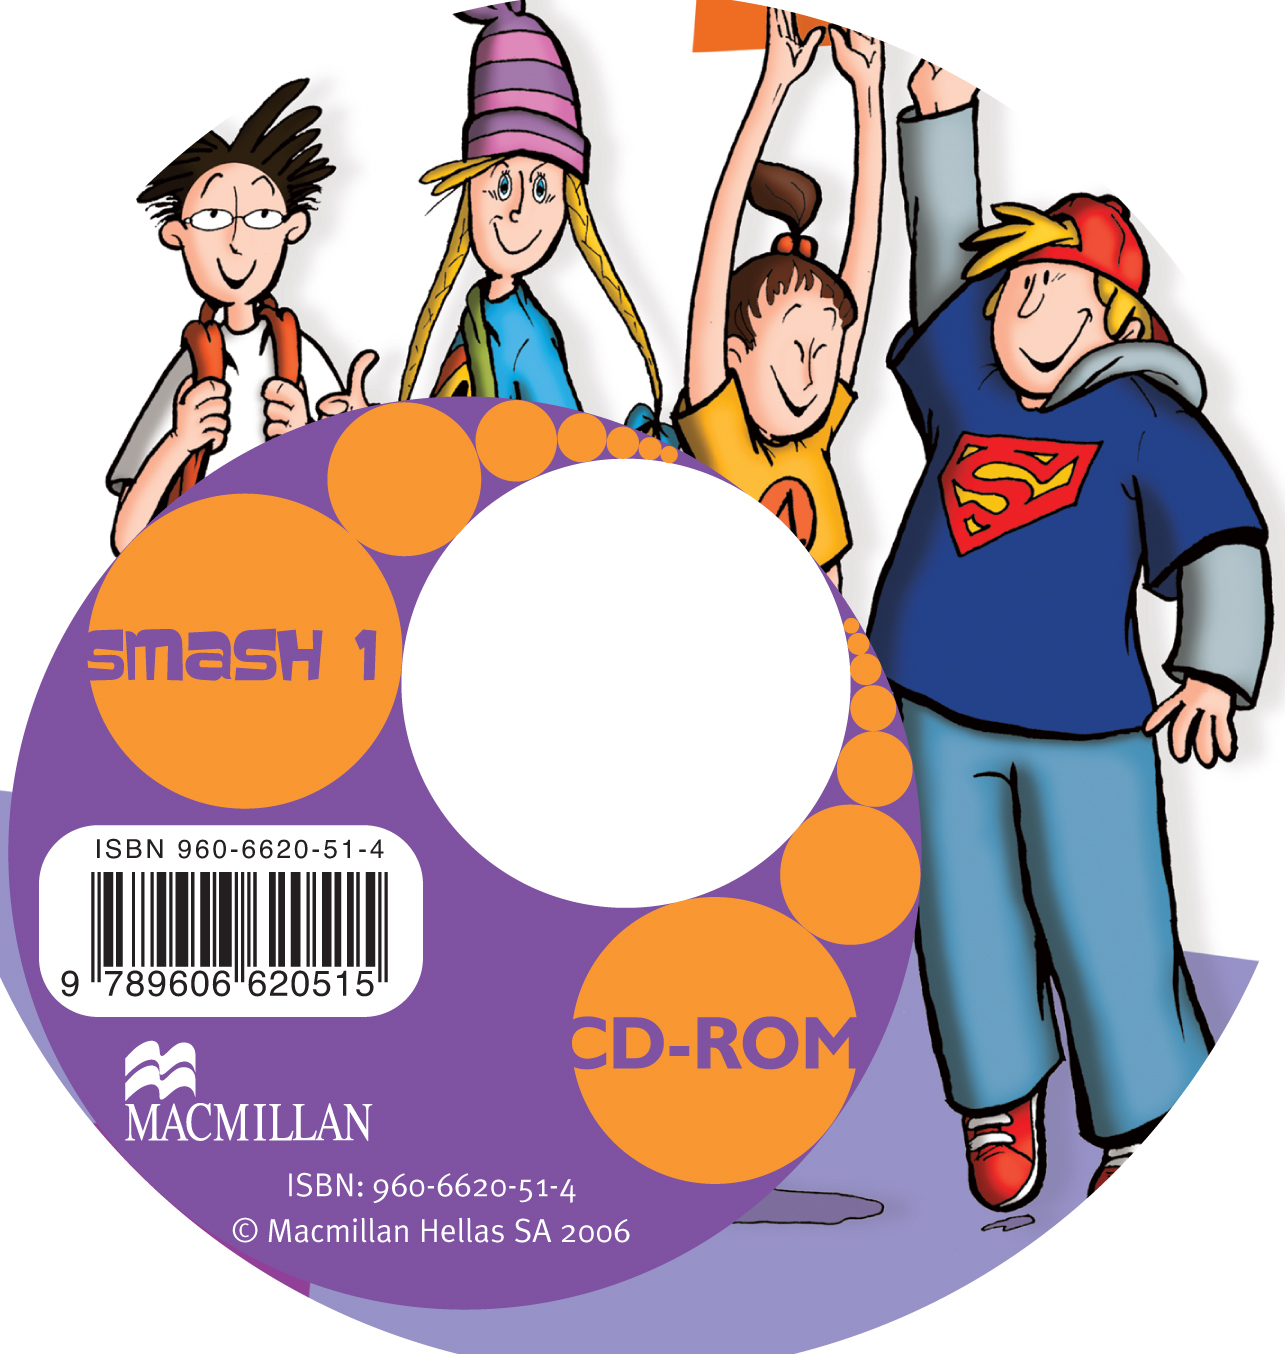 Smash 1 CD ROM International